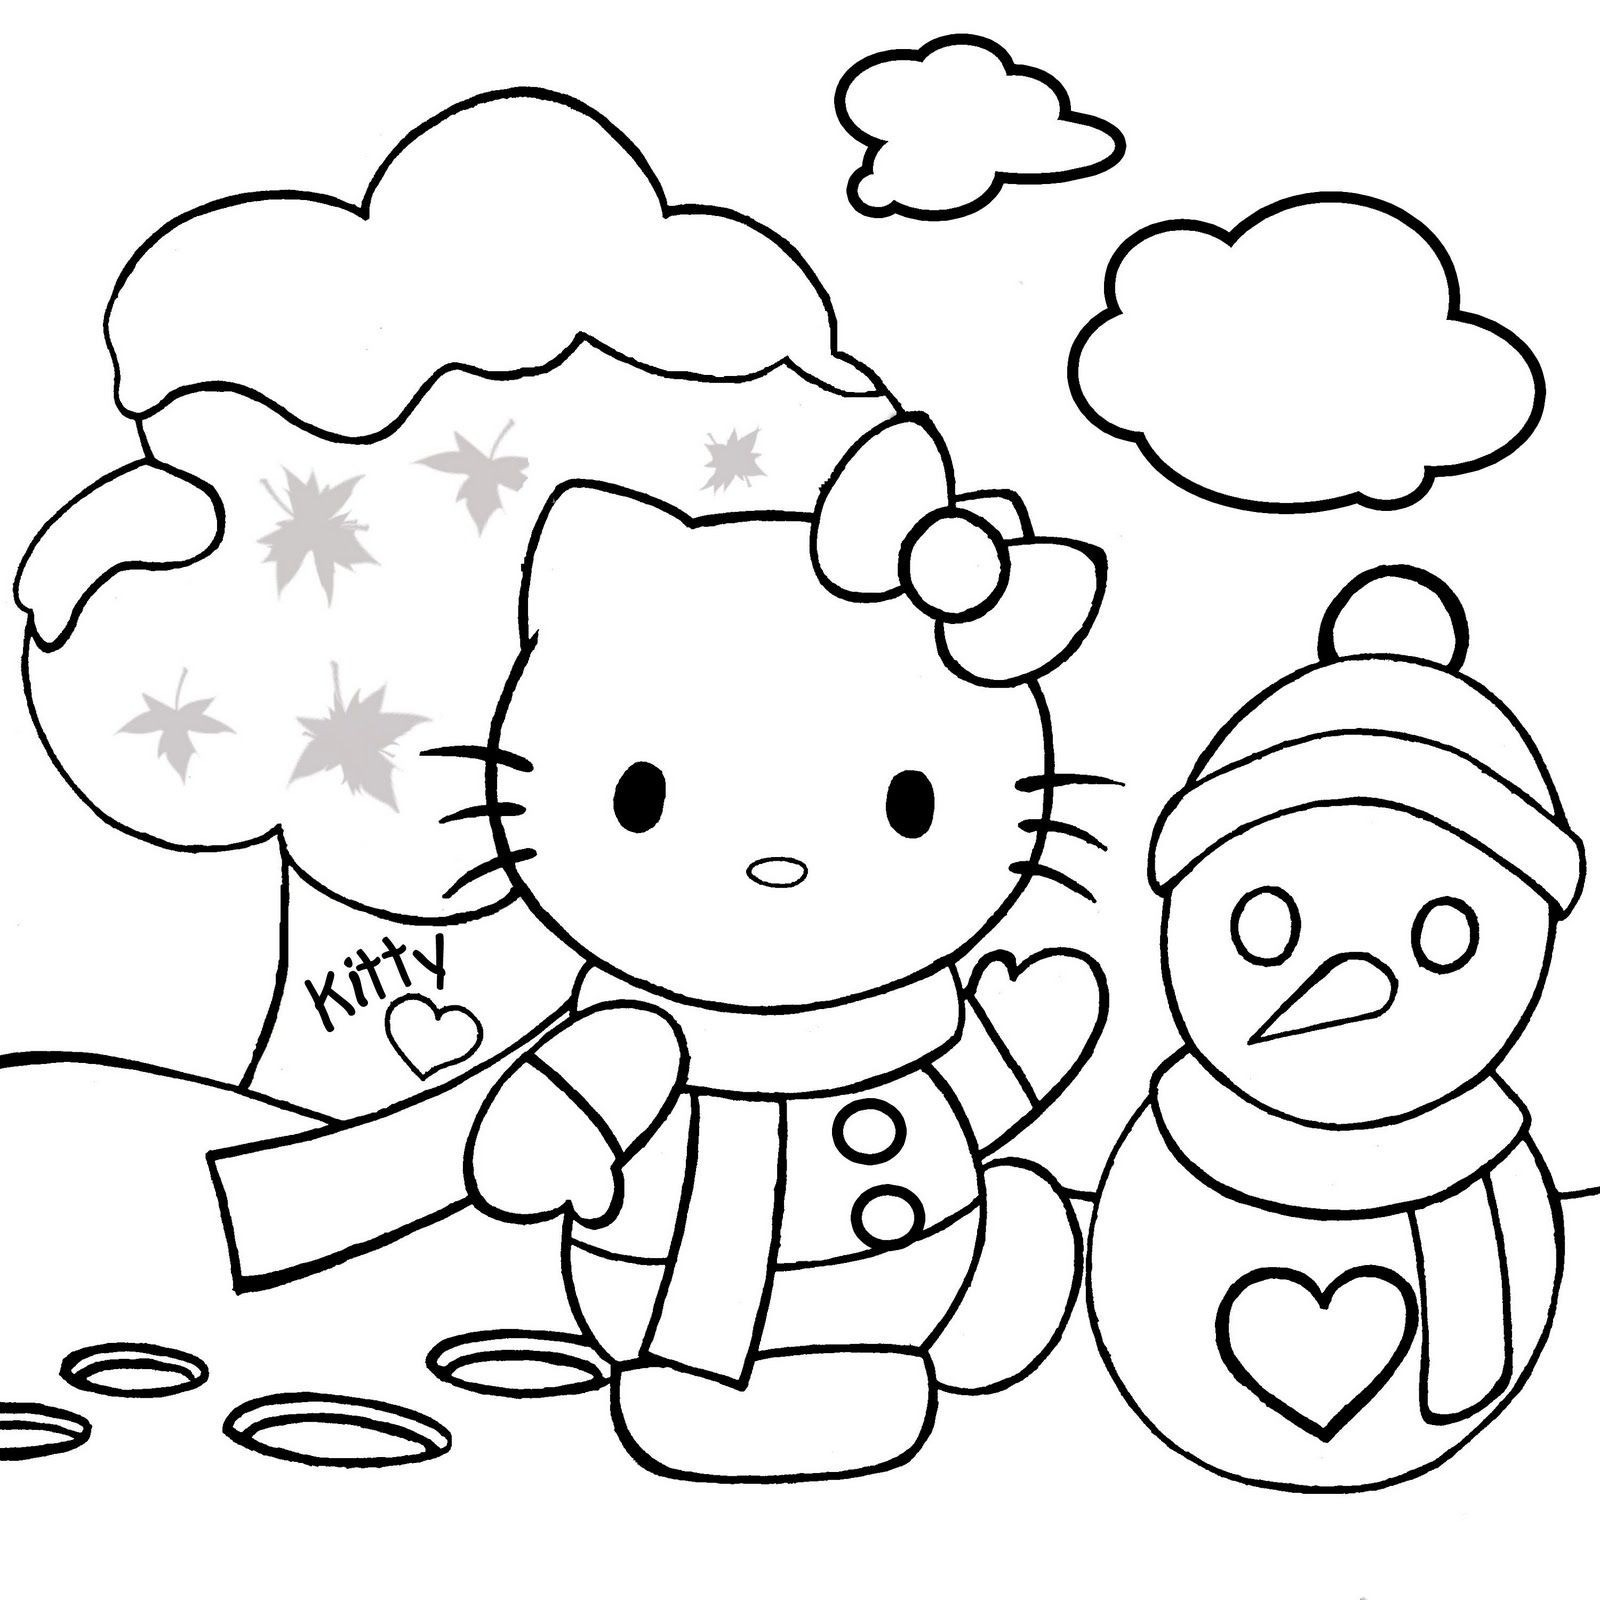 Christmas Kitty Coloring Pages With Games Inspirationa Evil Hello